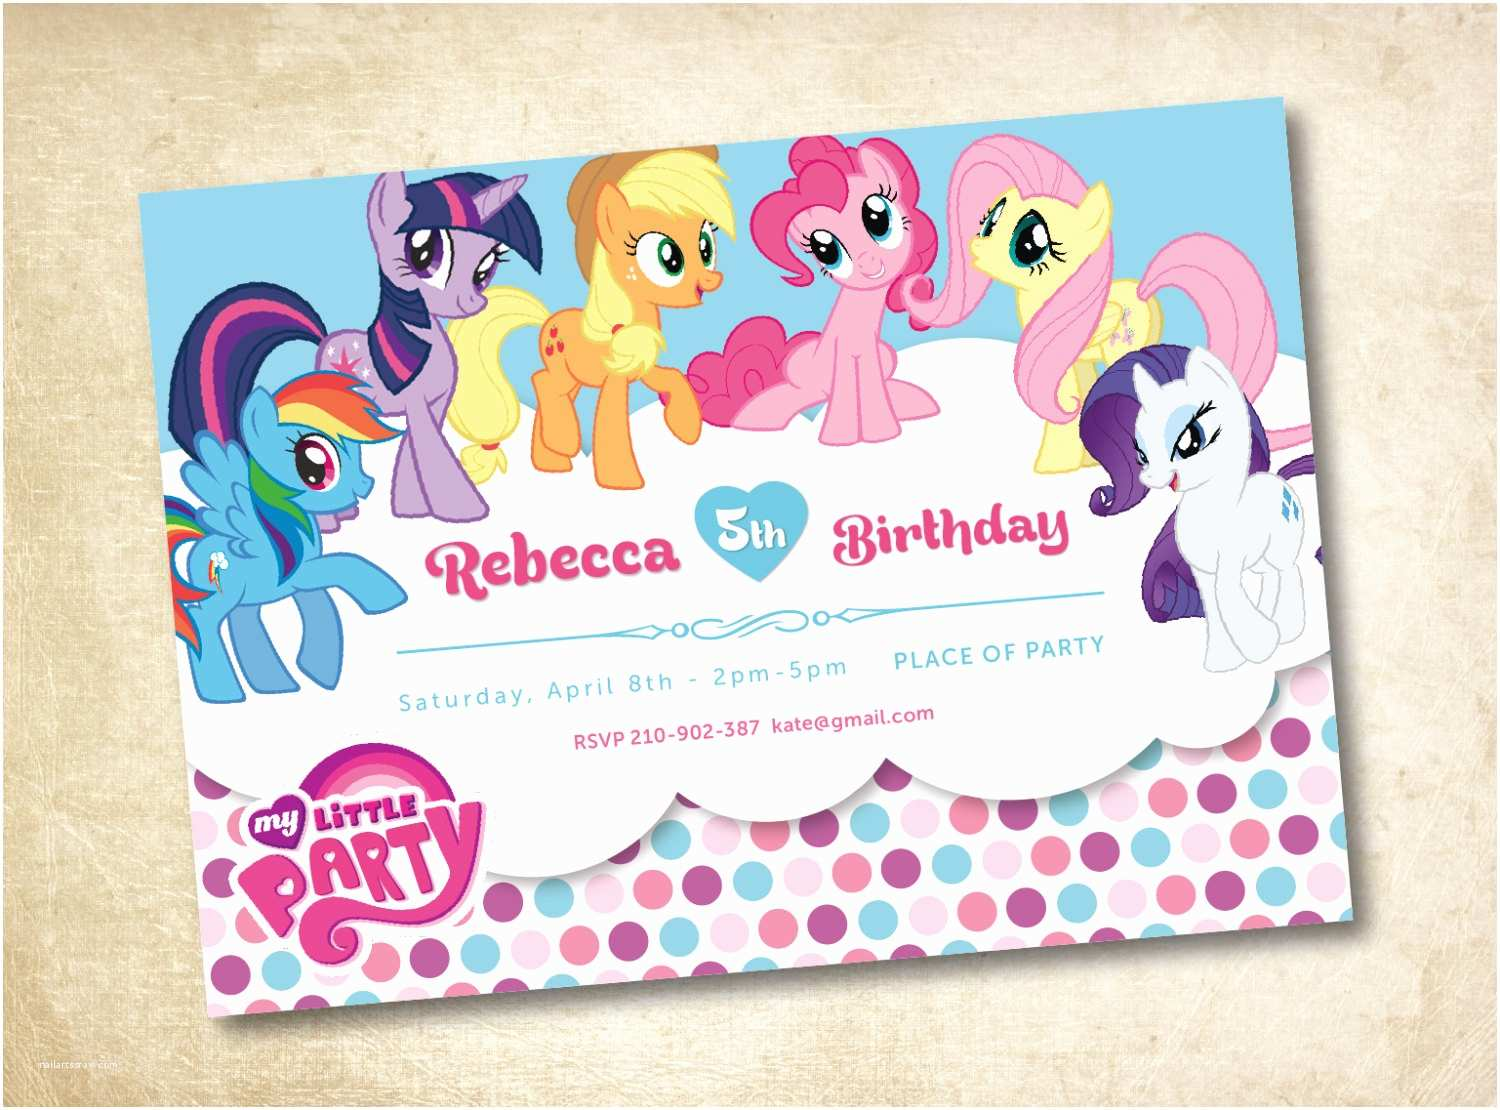 Custom Birthday Invitations Custom My Little Pony Birthday Invitations – Invitations